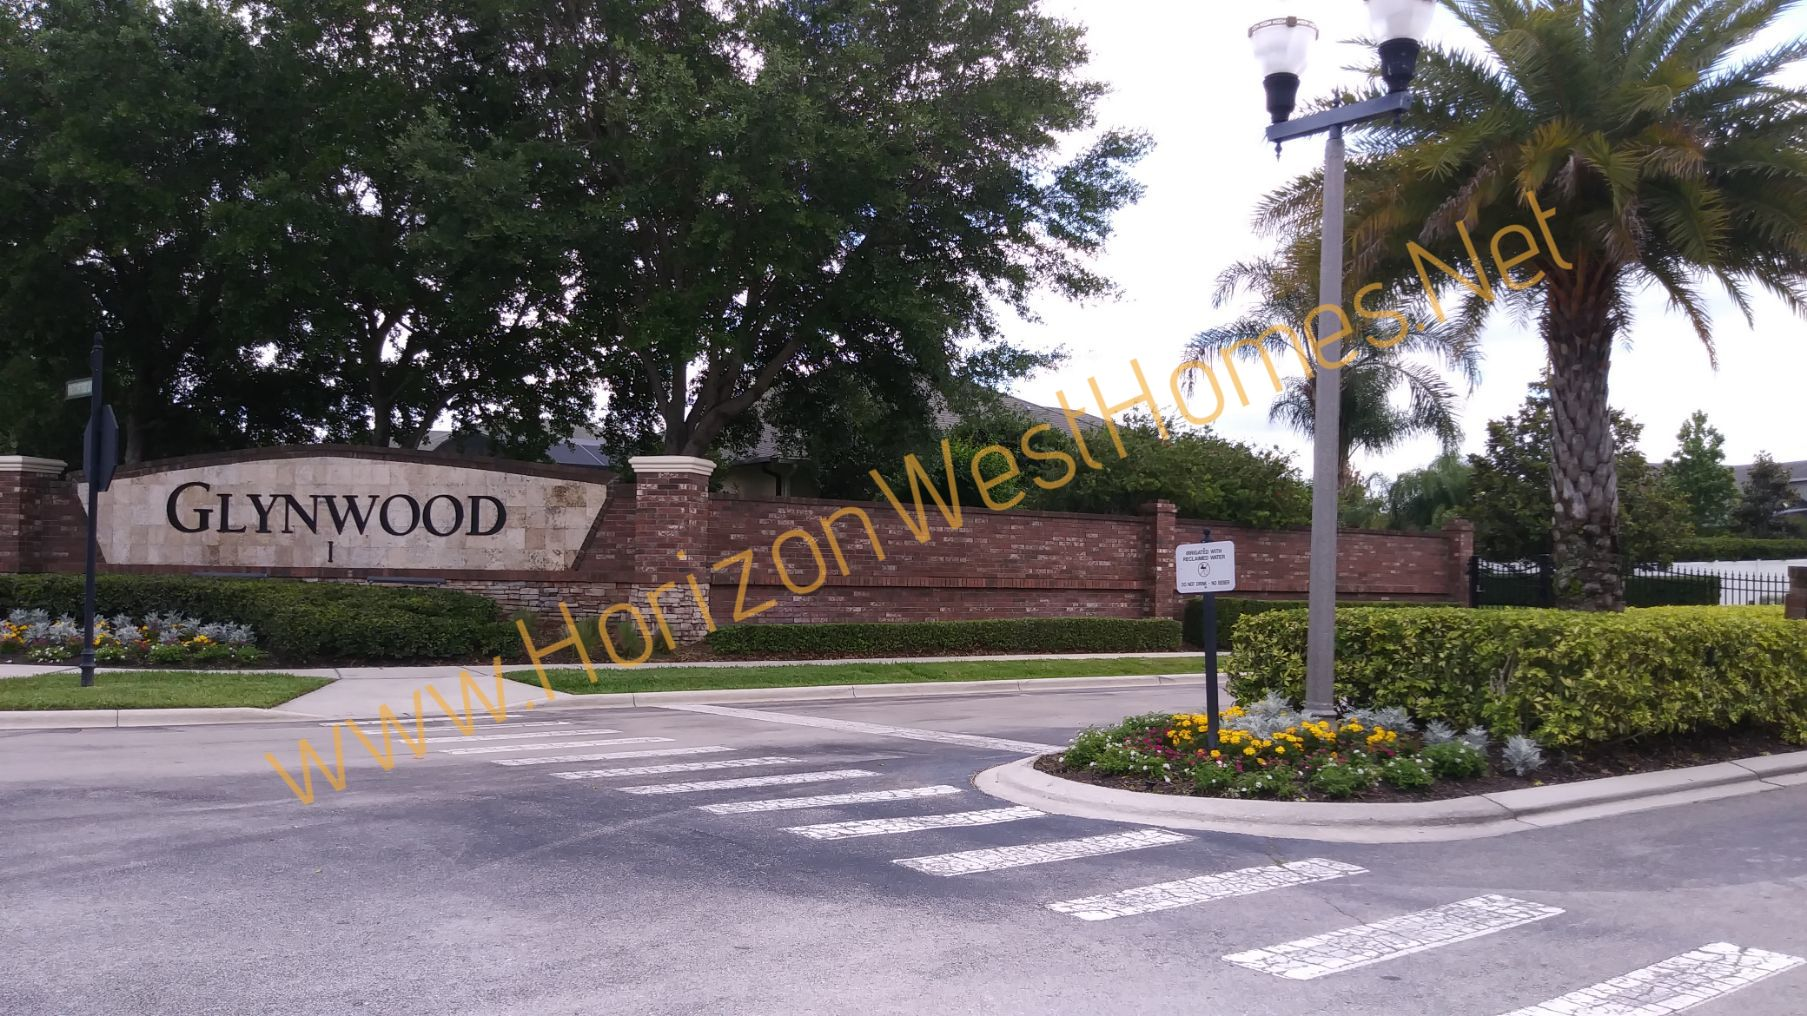 Glynwood Homes for sale in Winter Garden Florida. real estate with gated community